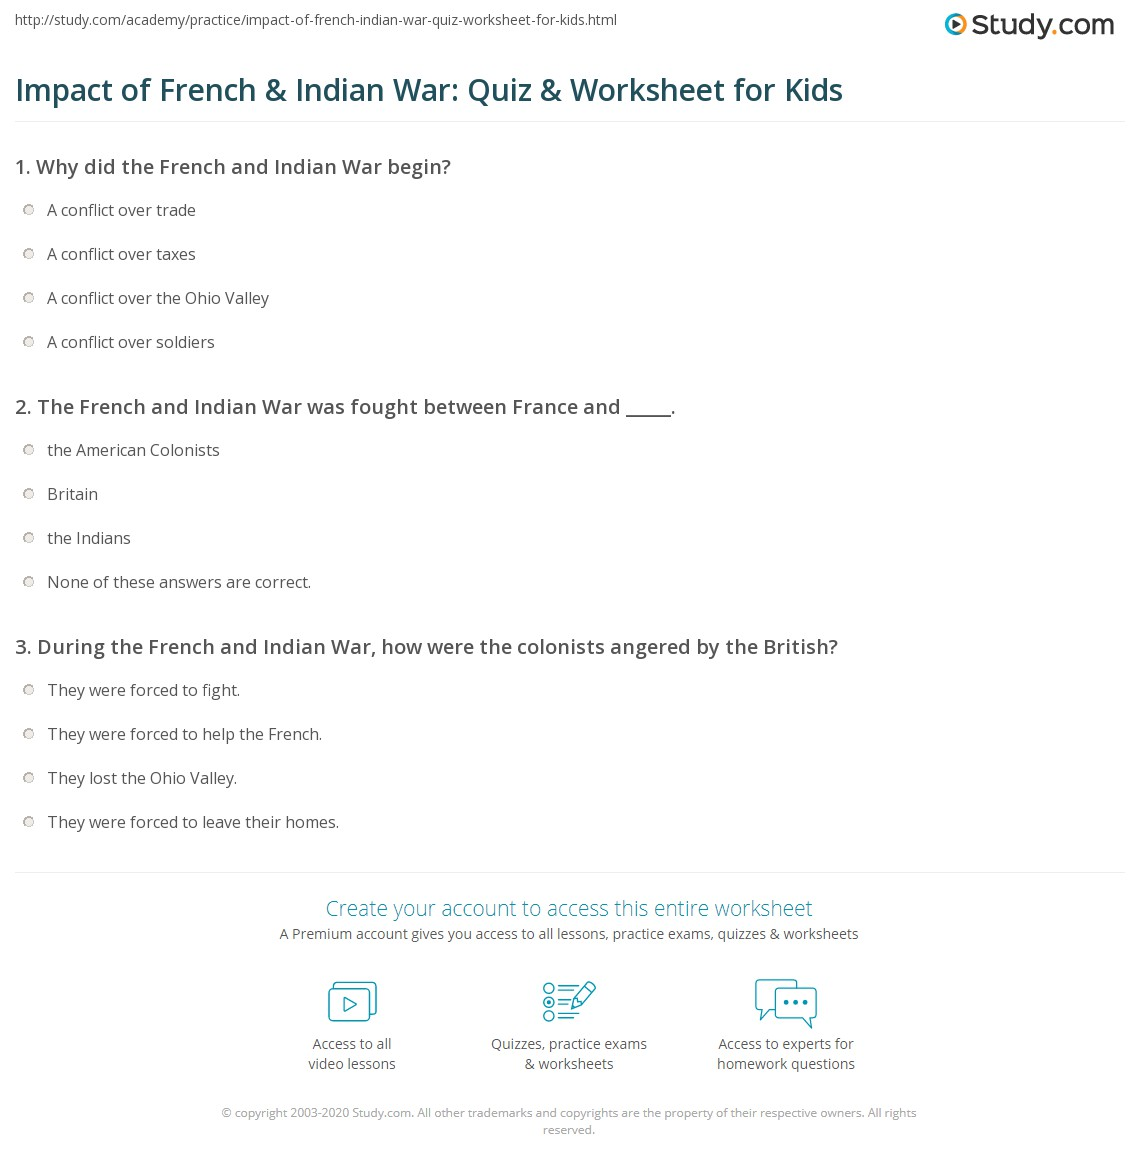 Impact of French & Indian War: Quiz & Worksheet for Kids | Study.com